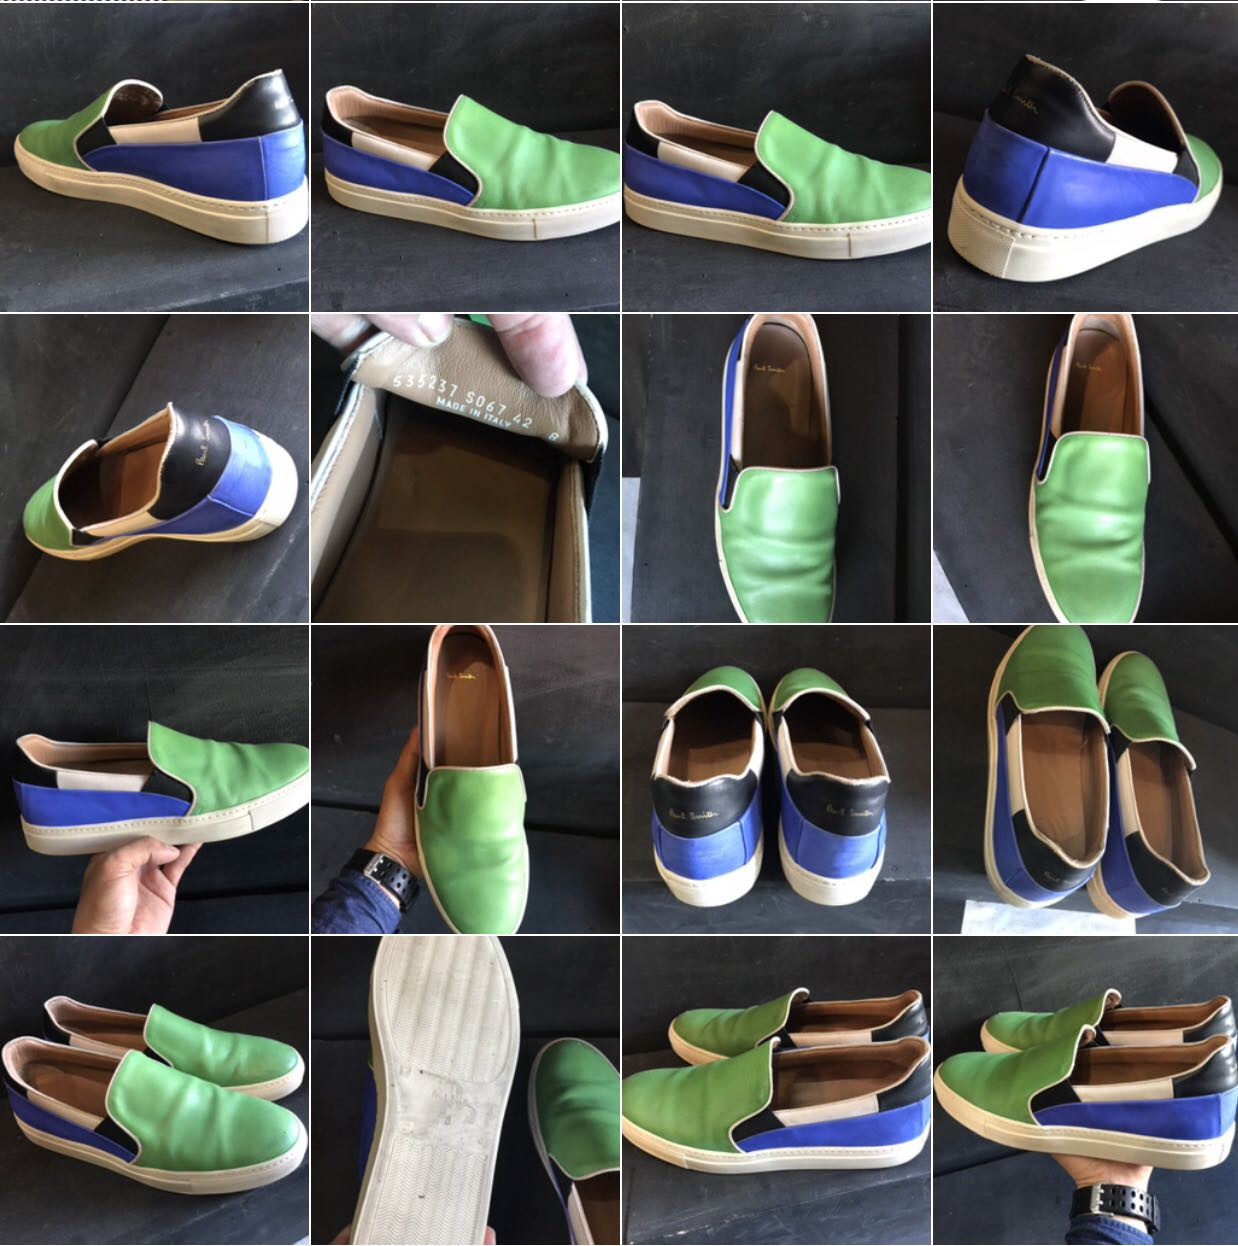 Men's Green And Blue Calf Leather 'zorn' Slip-on Sneakers - Green -. Paul Smith